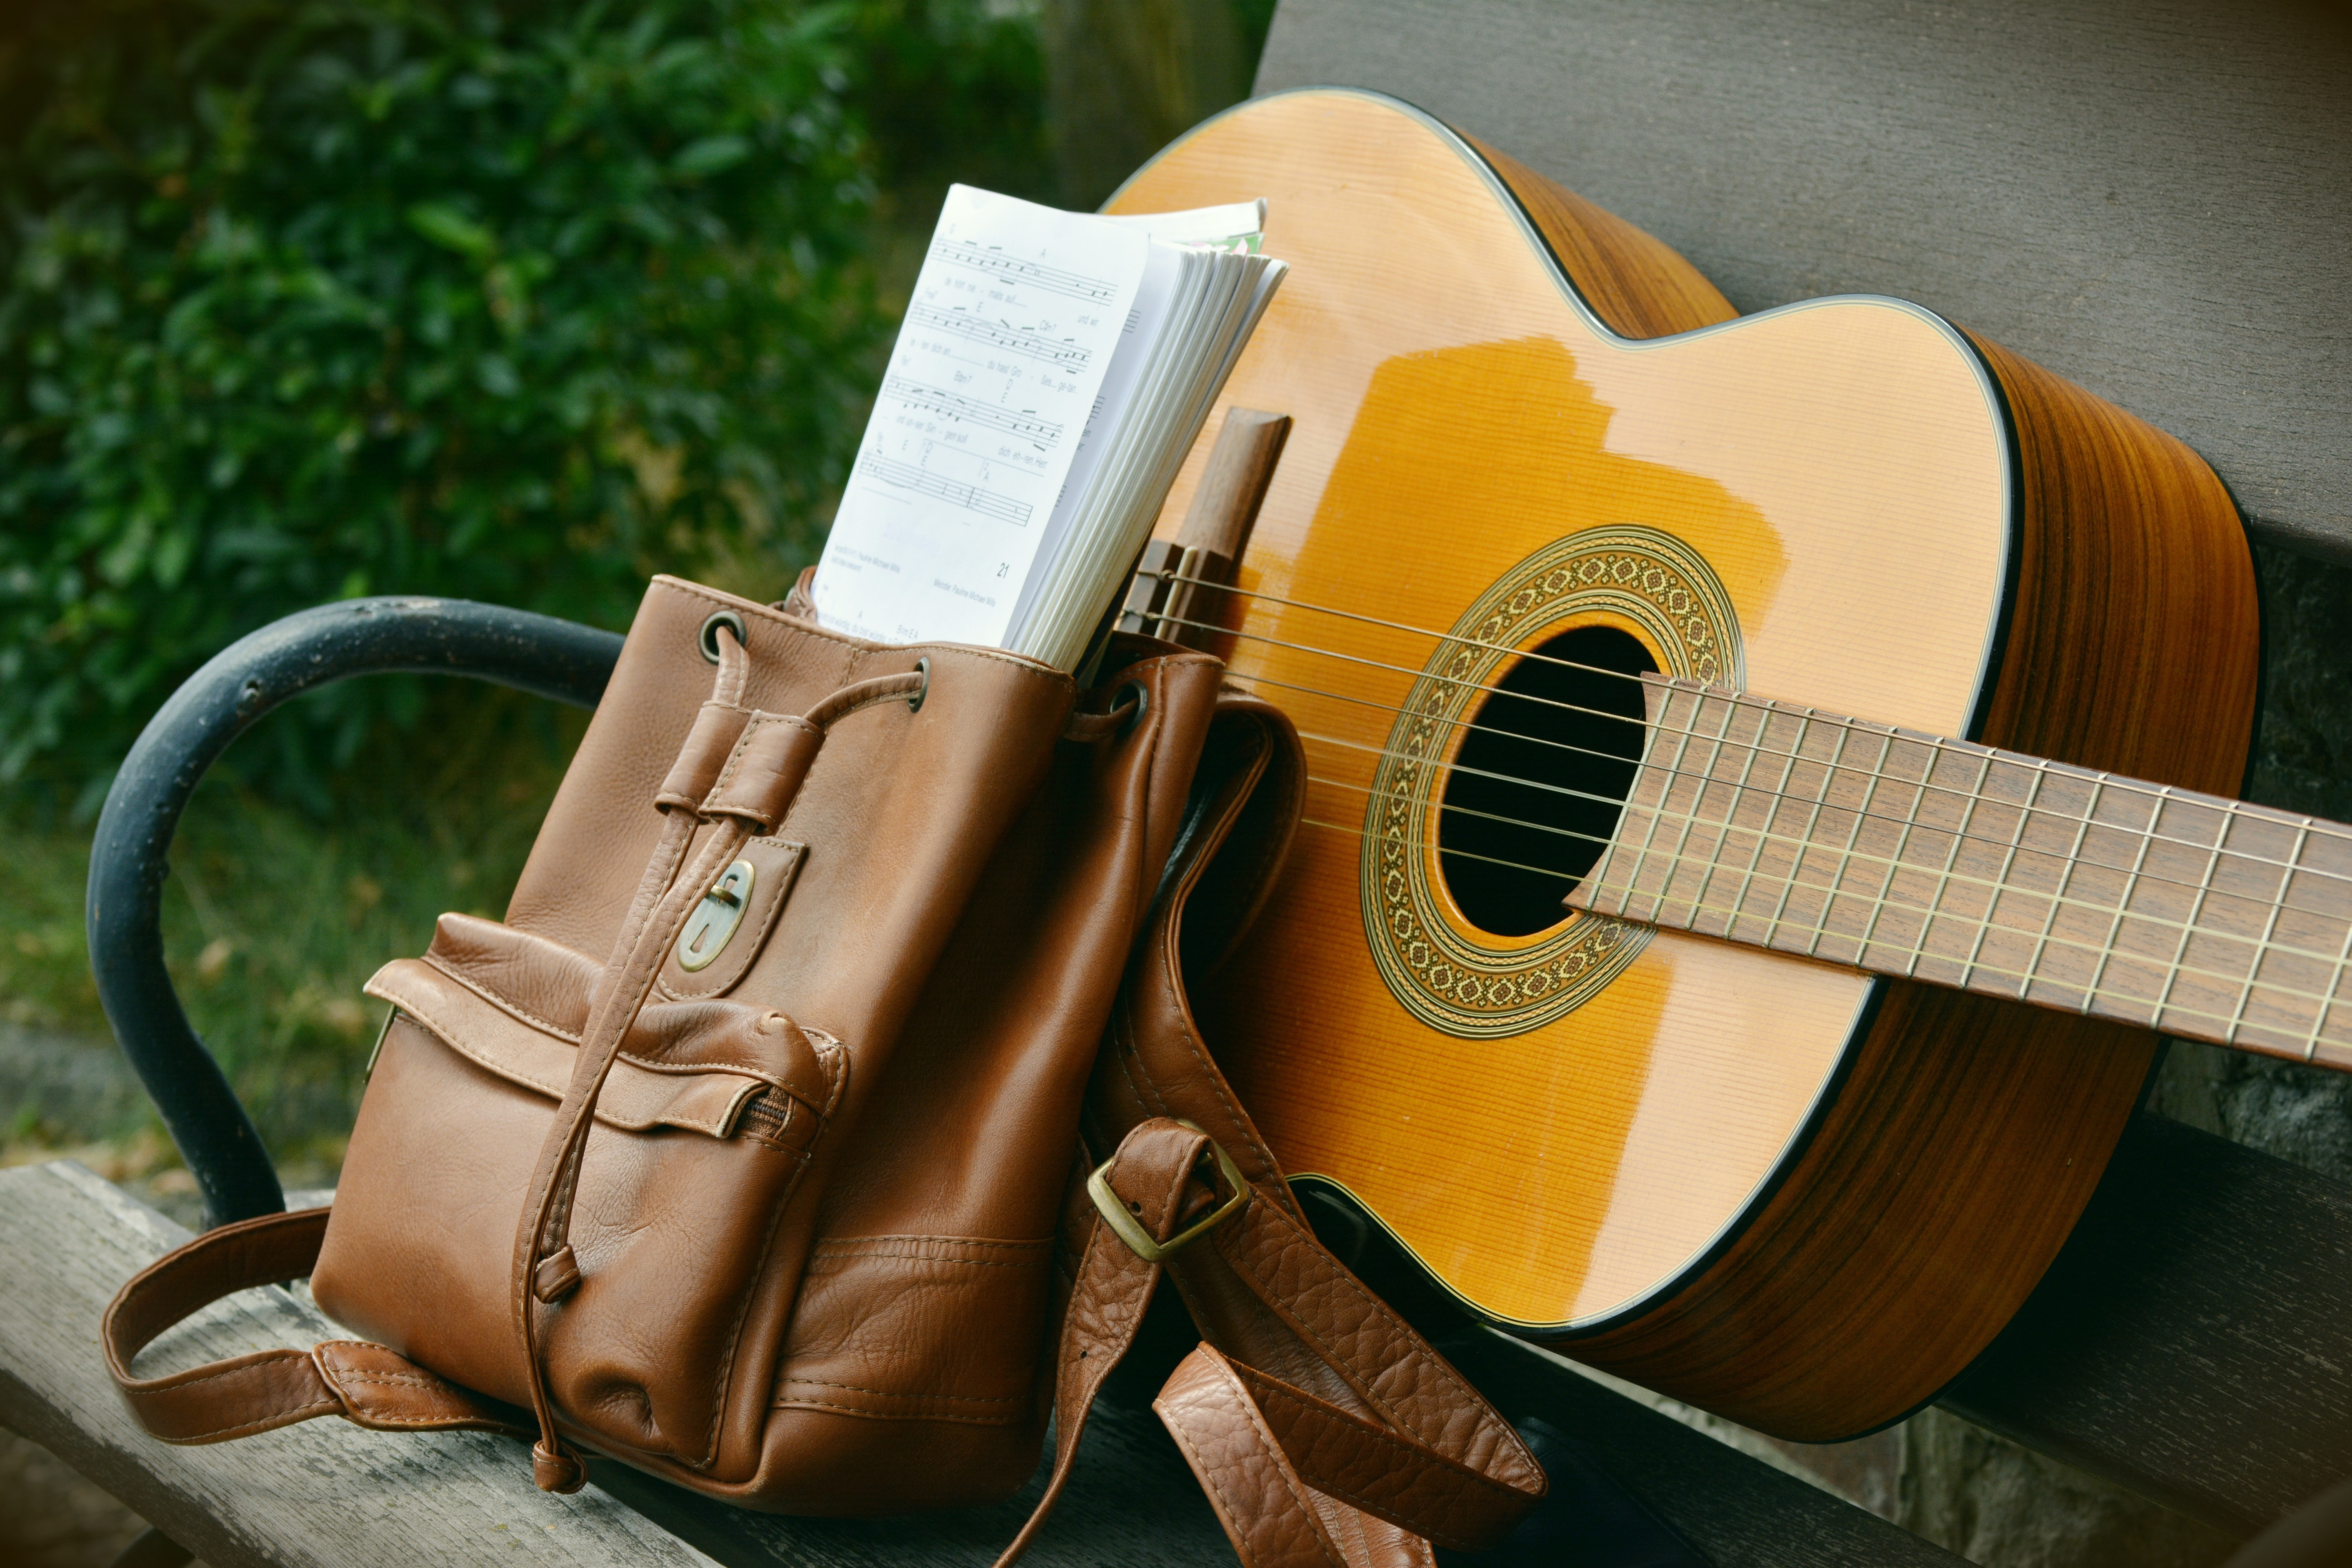 guitar and satchel